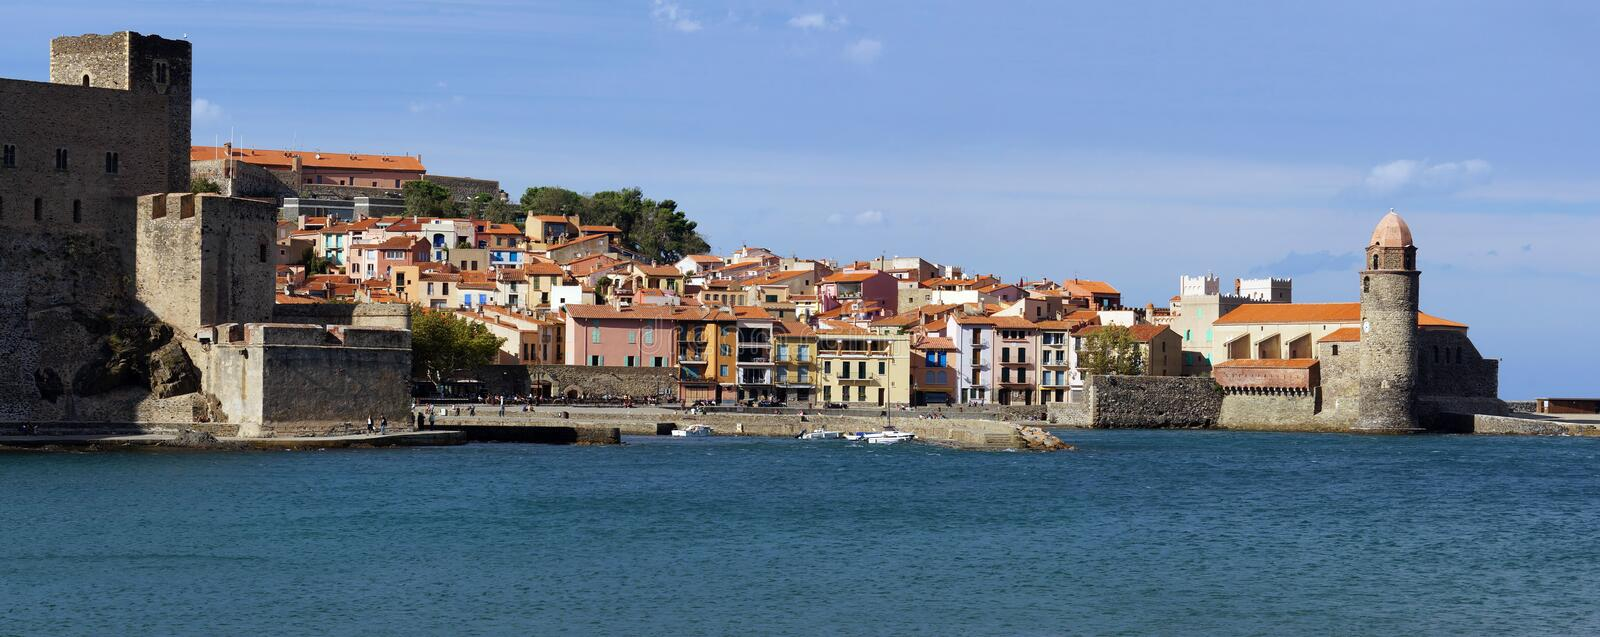 Download Panorama Over Collioure In The Vermilion Coast Stock Image - Image: 27962491